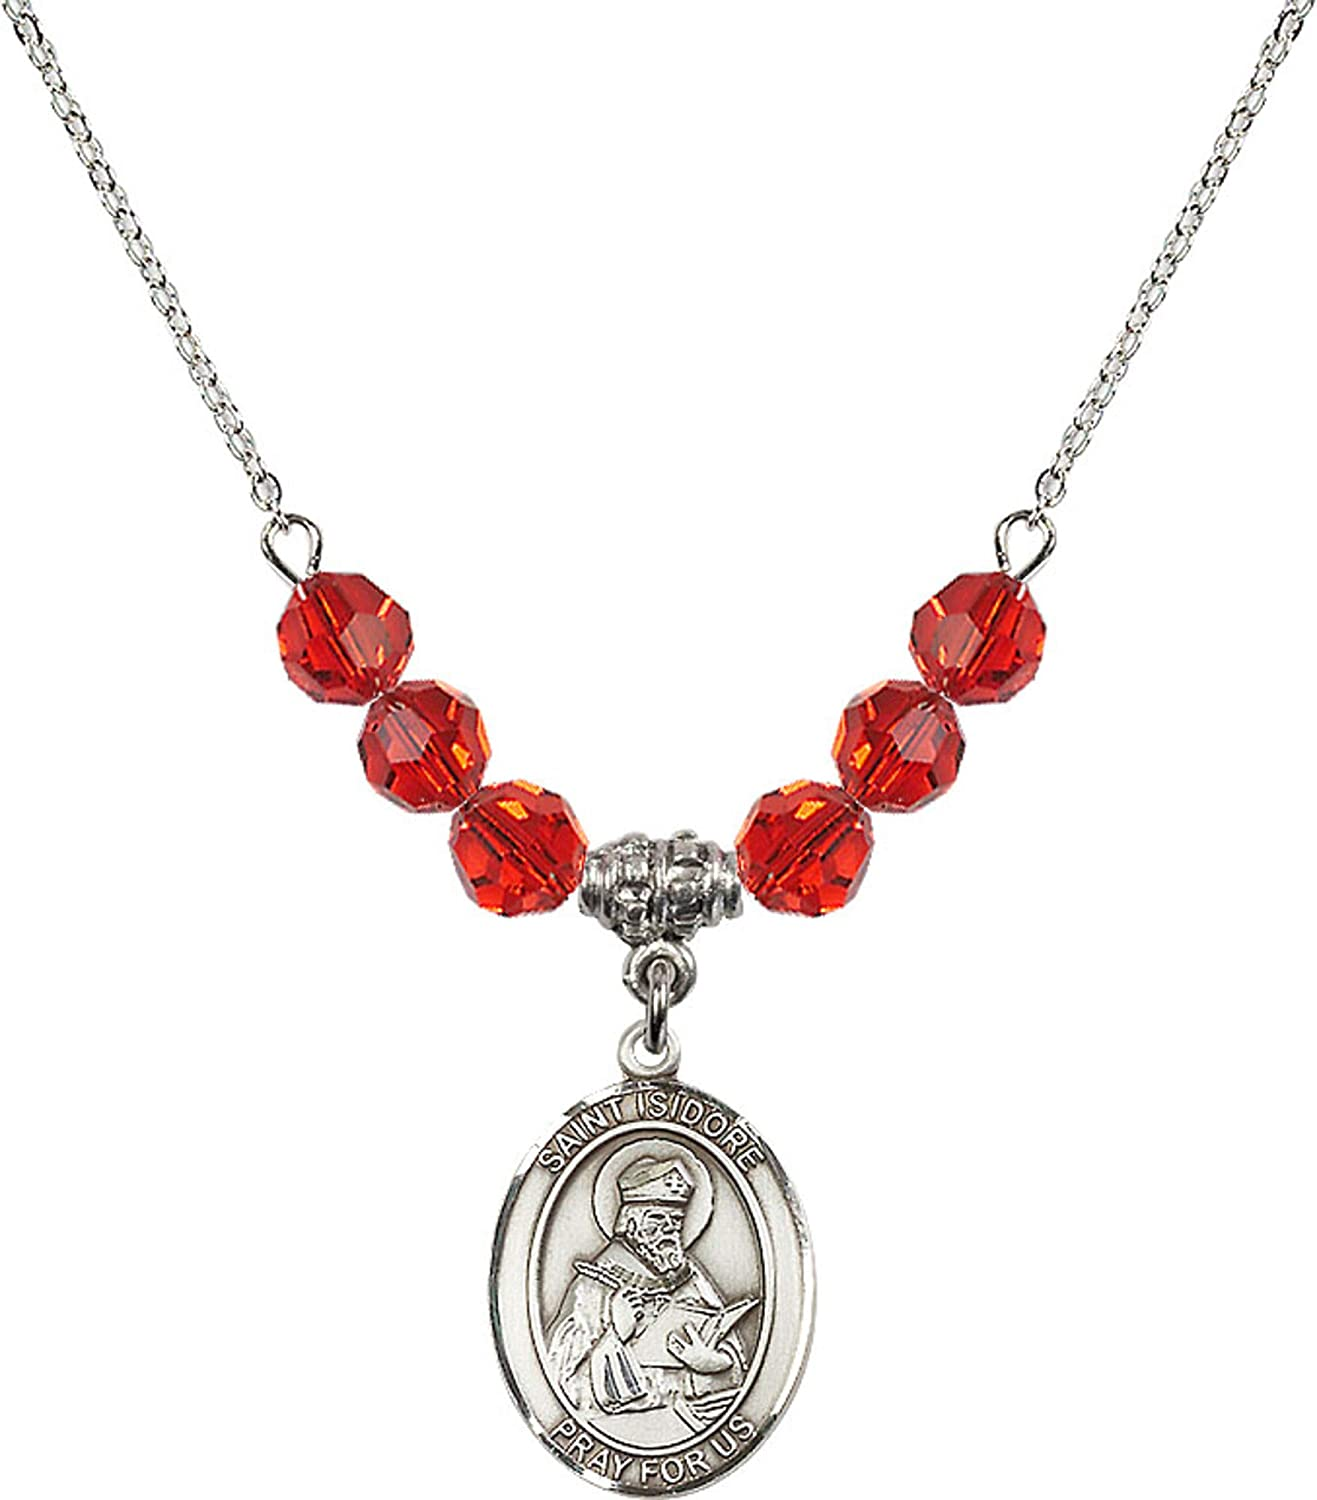 Bonyak Jewelry 18 Inch Rhodium Plated Necklace w// 6mm Red July Birth Month Stone Beads and Saint Isidore of Seville Charm